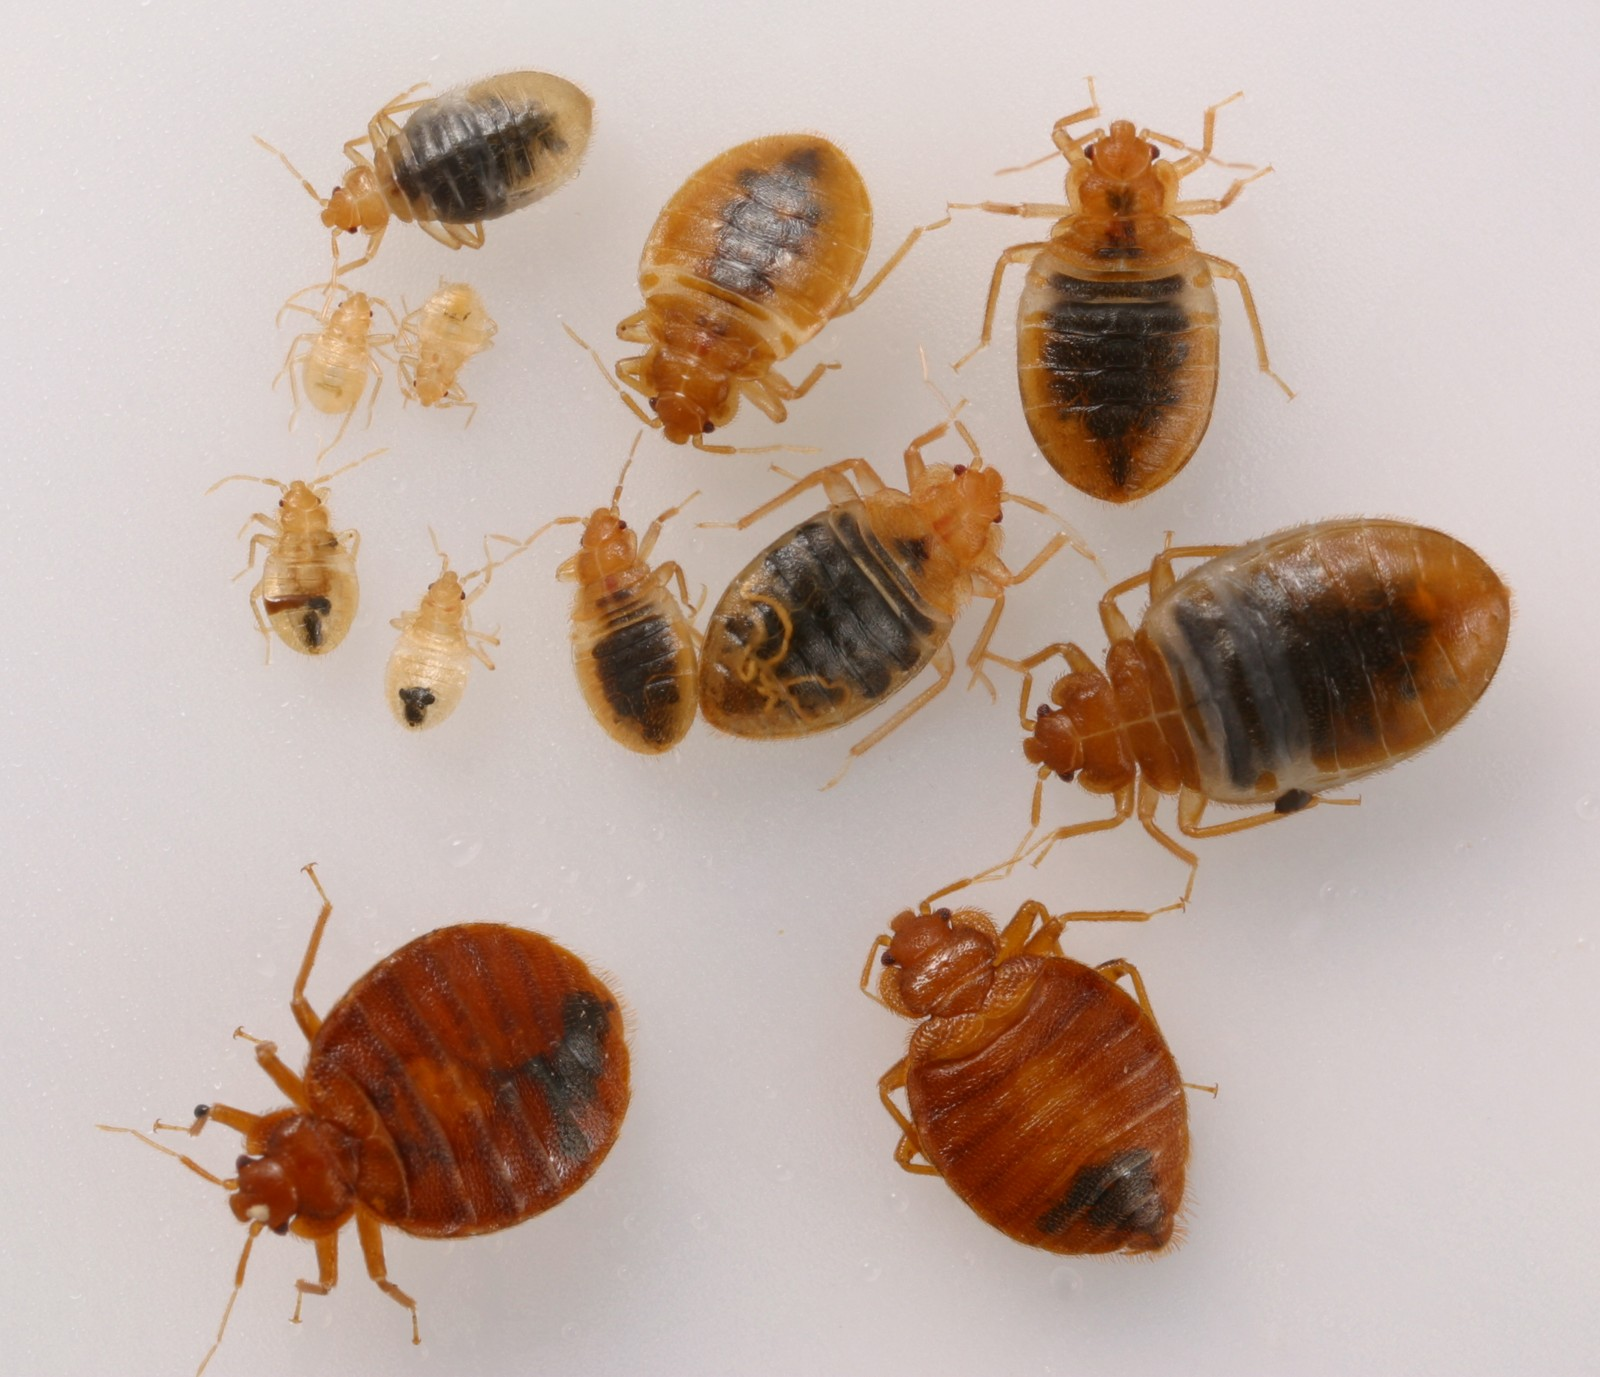 bed bug remediation & Prevention - Bed bugs, until recent years were not much of an issue. Within the last 10 years these little blood suckers have made a serious comeback in the US & other countries by developing a resistance to common pesticides. Modern chemistry developments & tactics have recently made effective control possible once again.